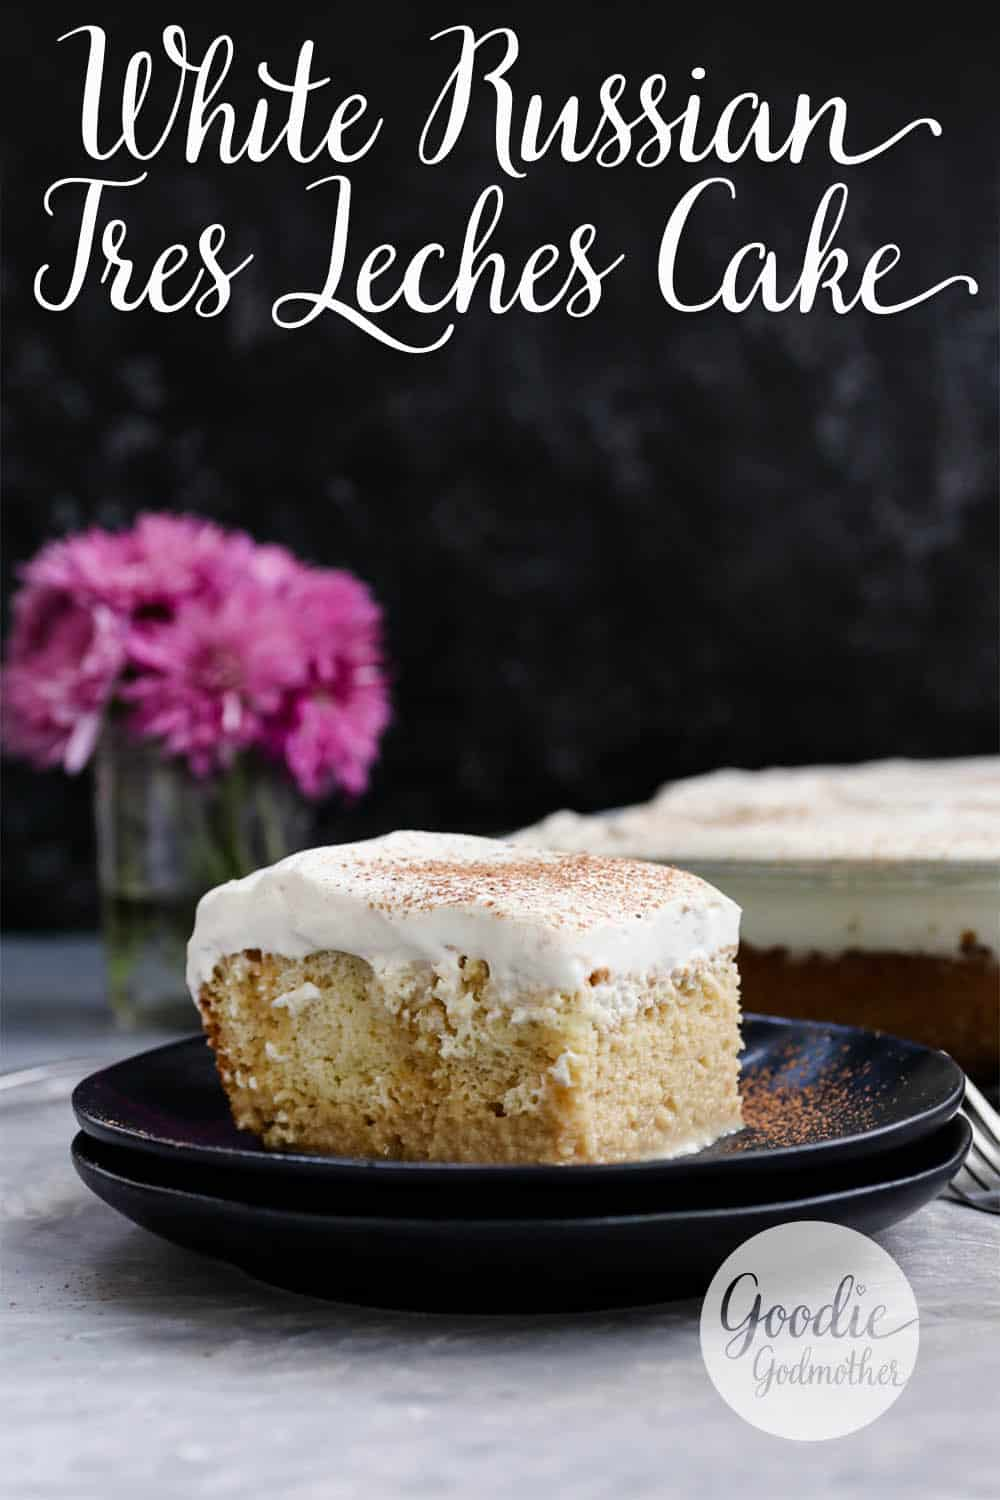 White Russian Tres Leches cake is ready for happy hour! A boozy tres leches cake variation, this dessert is a hit anytime. * Recipe on GoodieGodmother.com